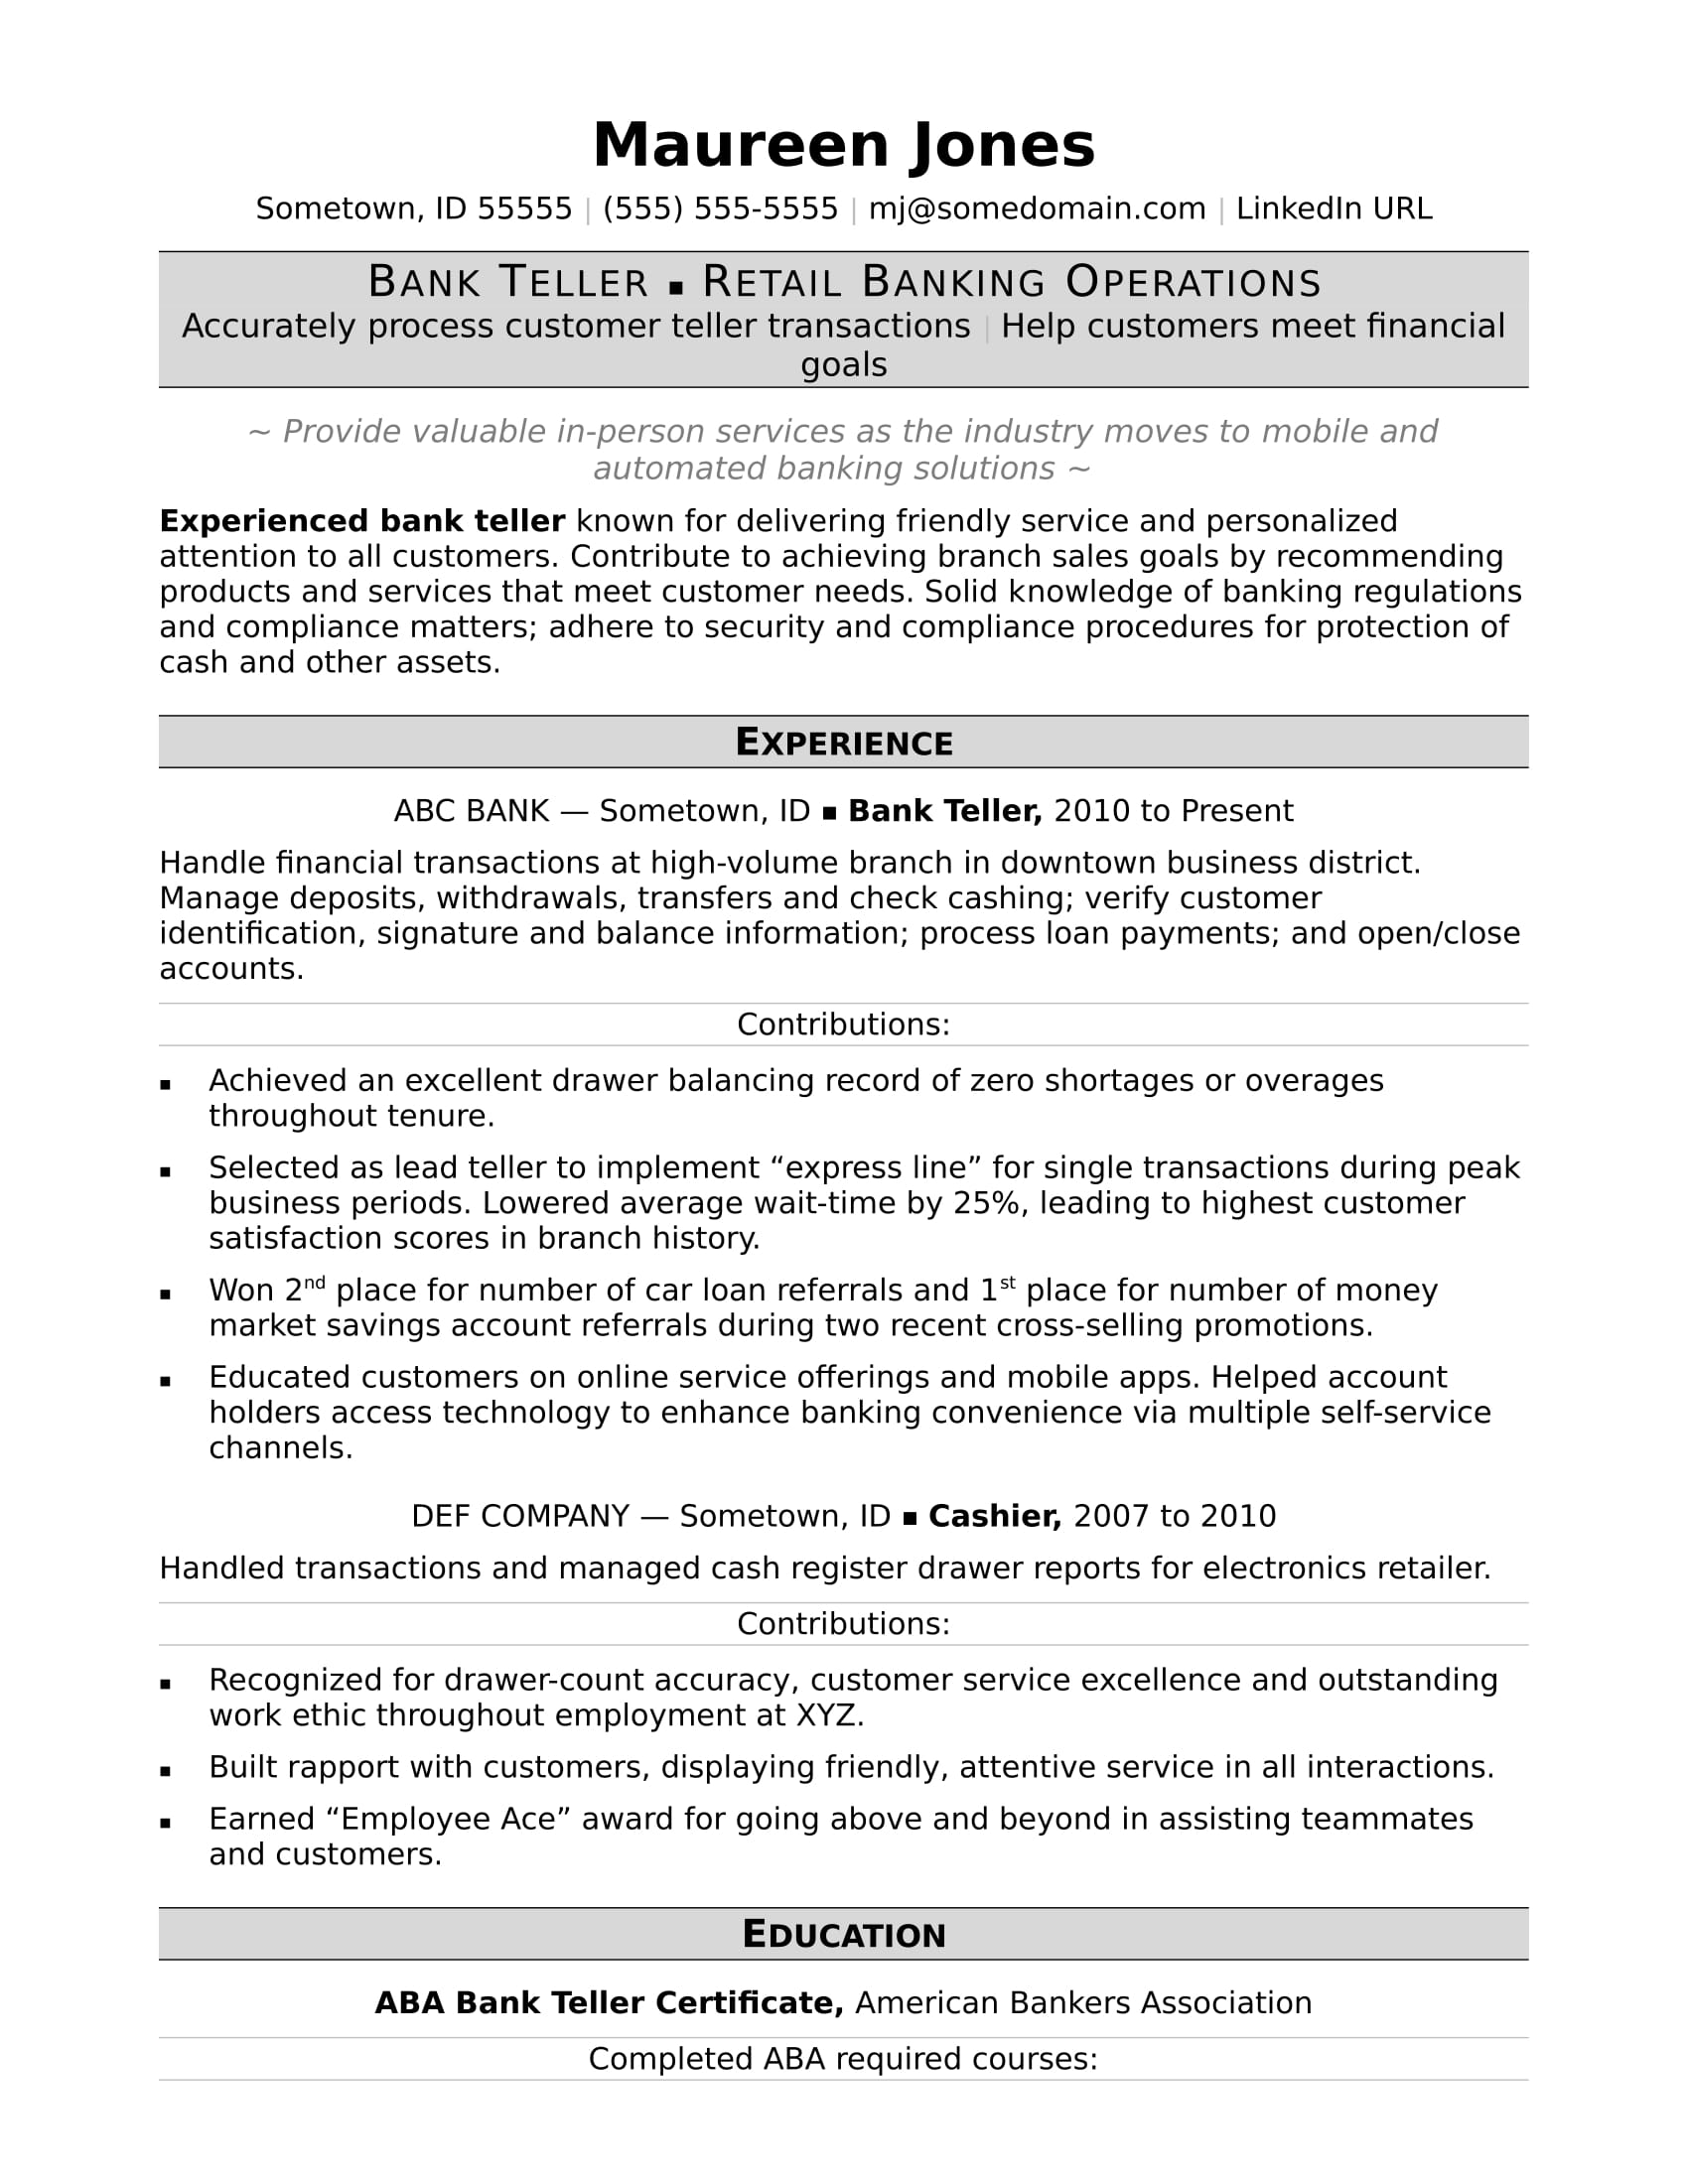 bank teller resume sample - Bank Teller Resume Sample